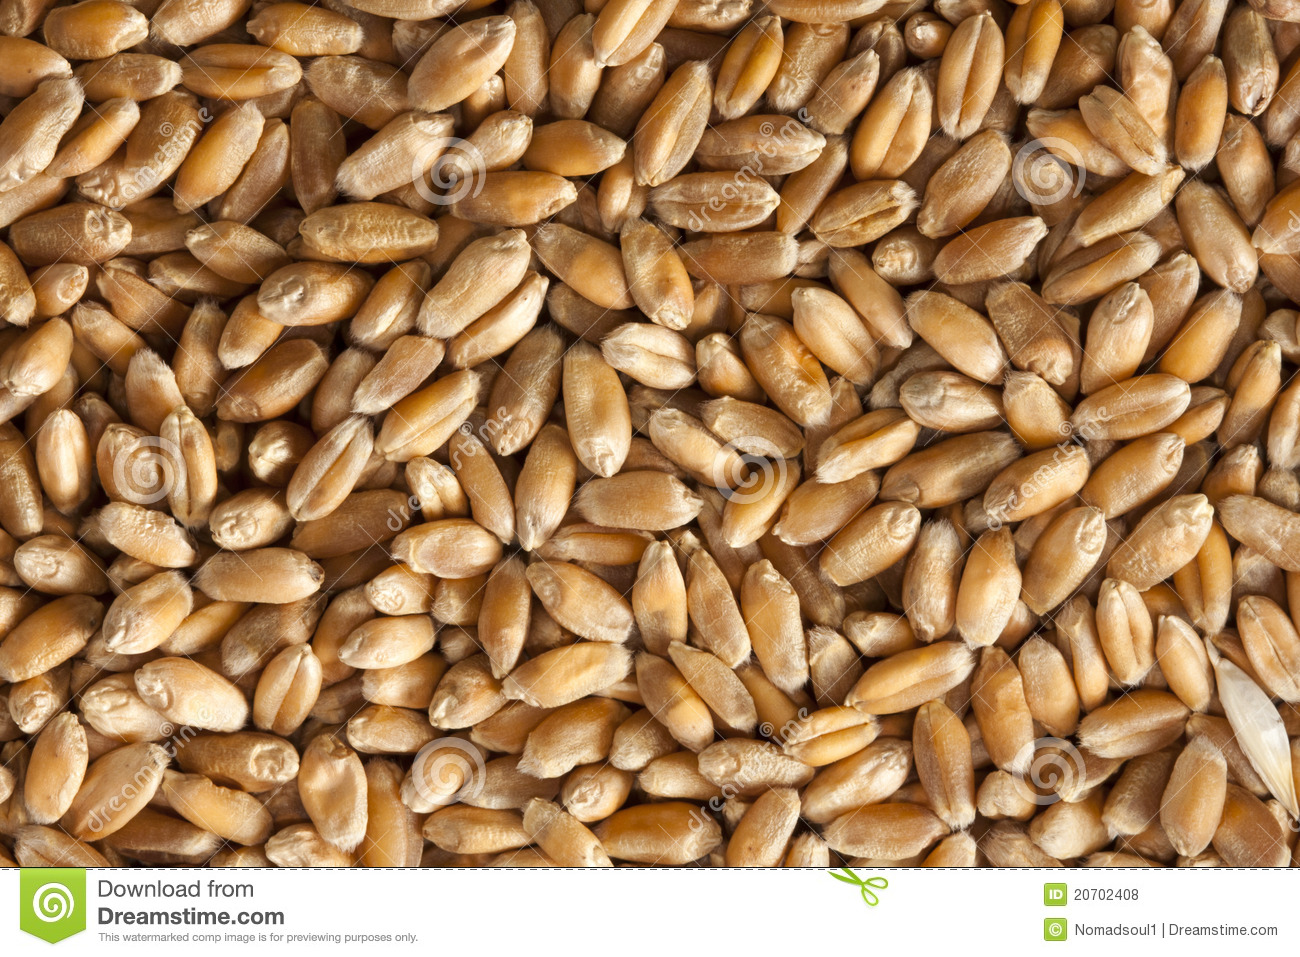 Wheat Seeds Royalty Free Stock Photos - Image: 20702408: www.dreamstime.com/royalty-free-stock-photos-wheat-seeds-image20702408